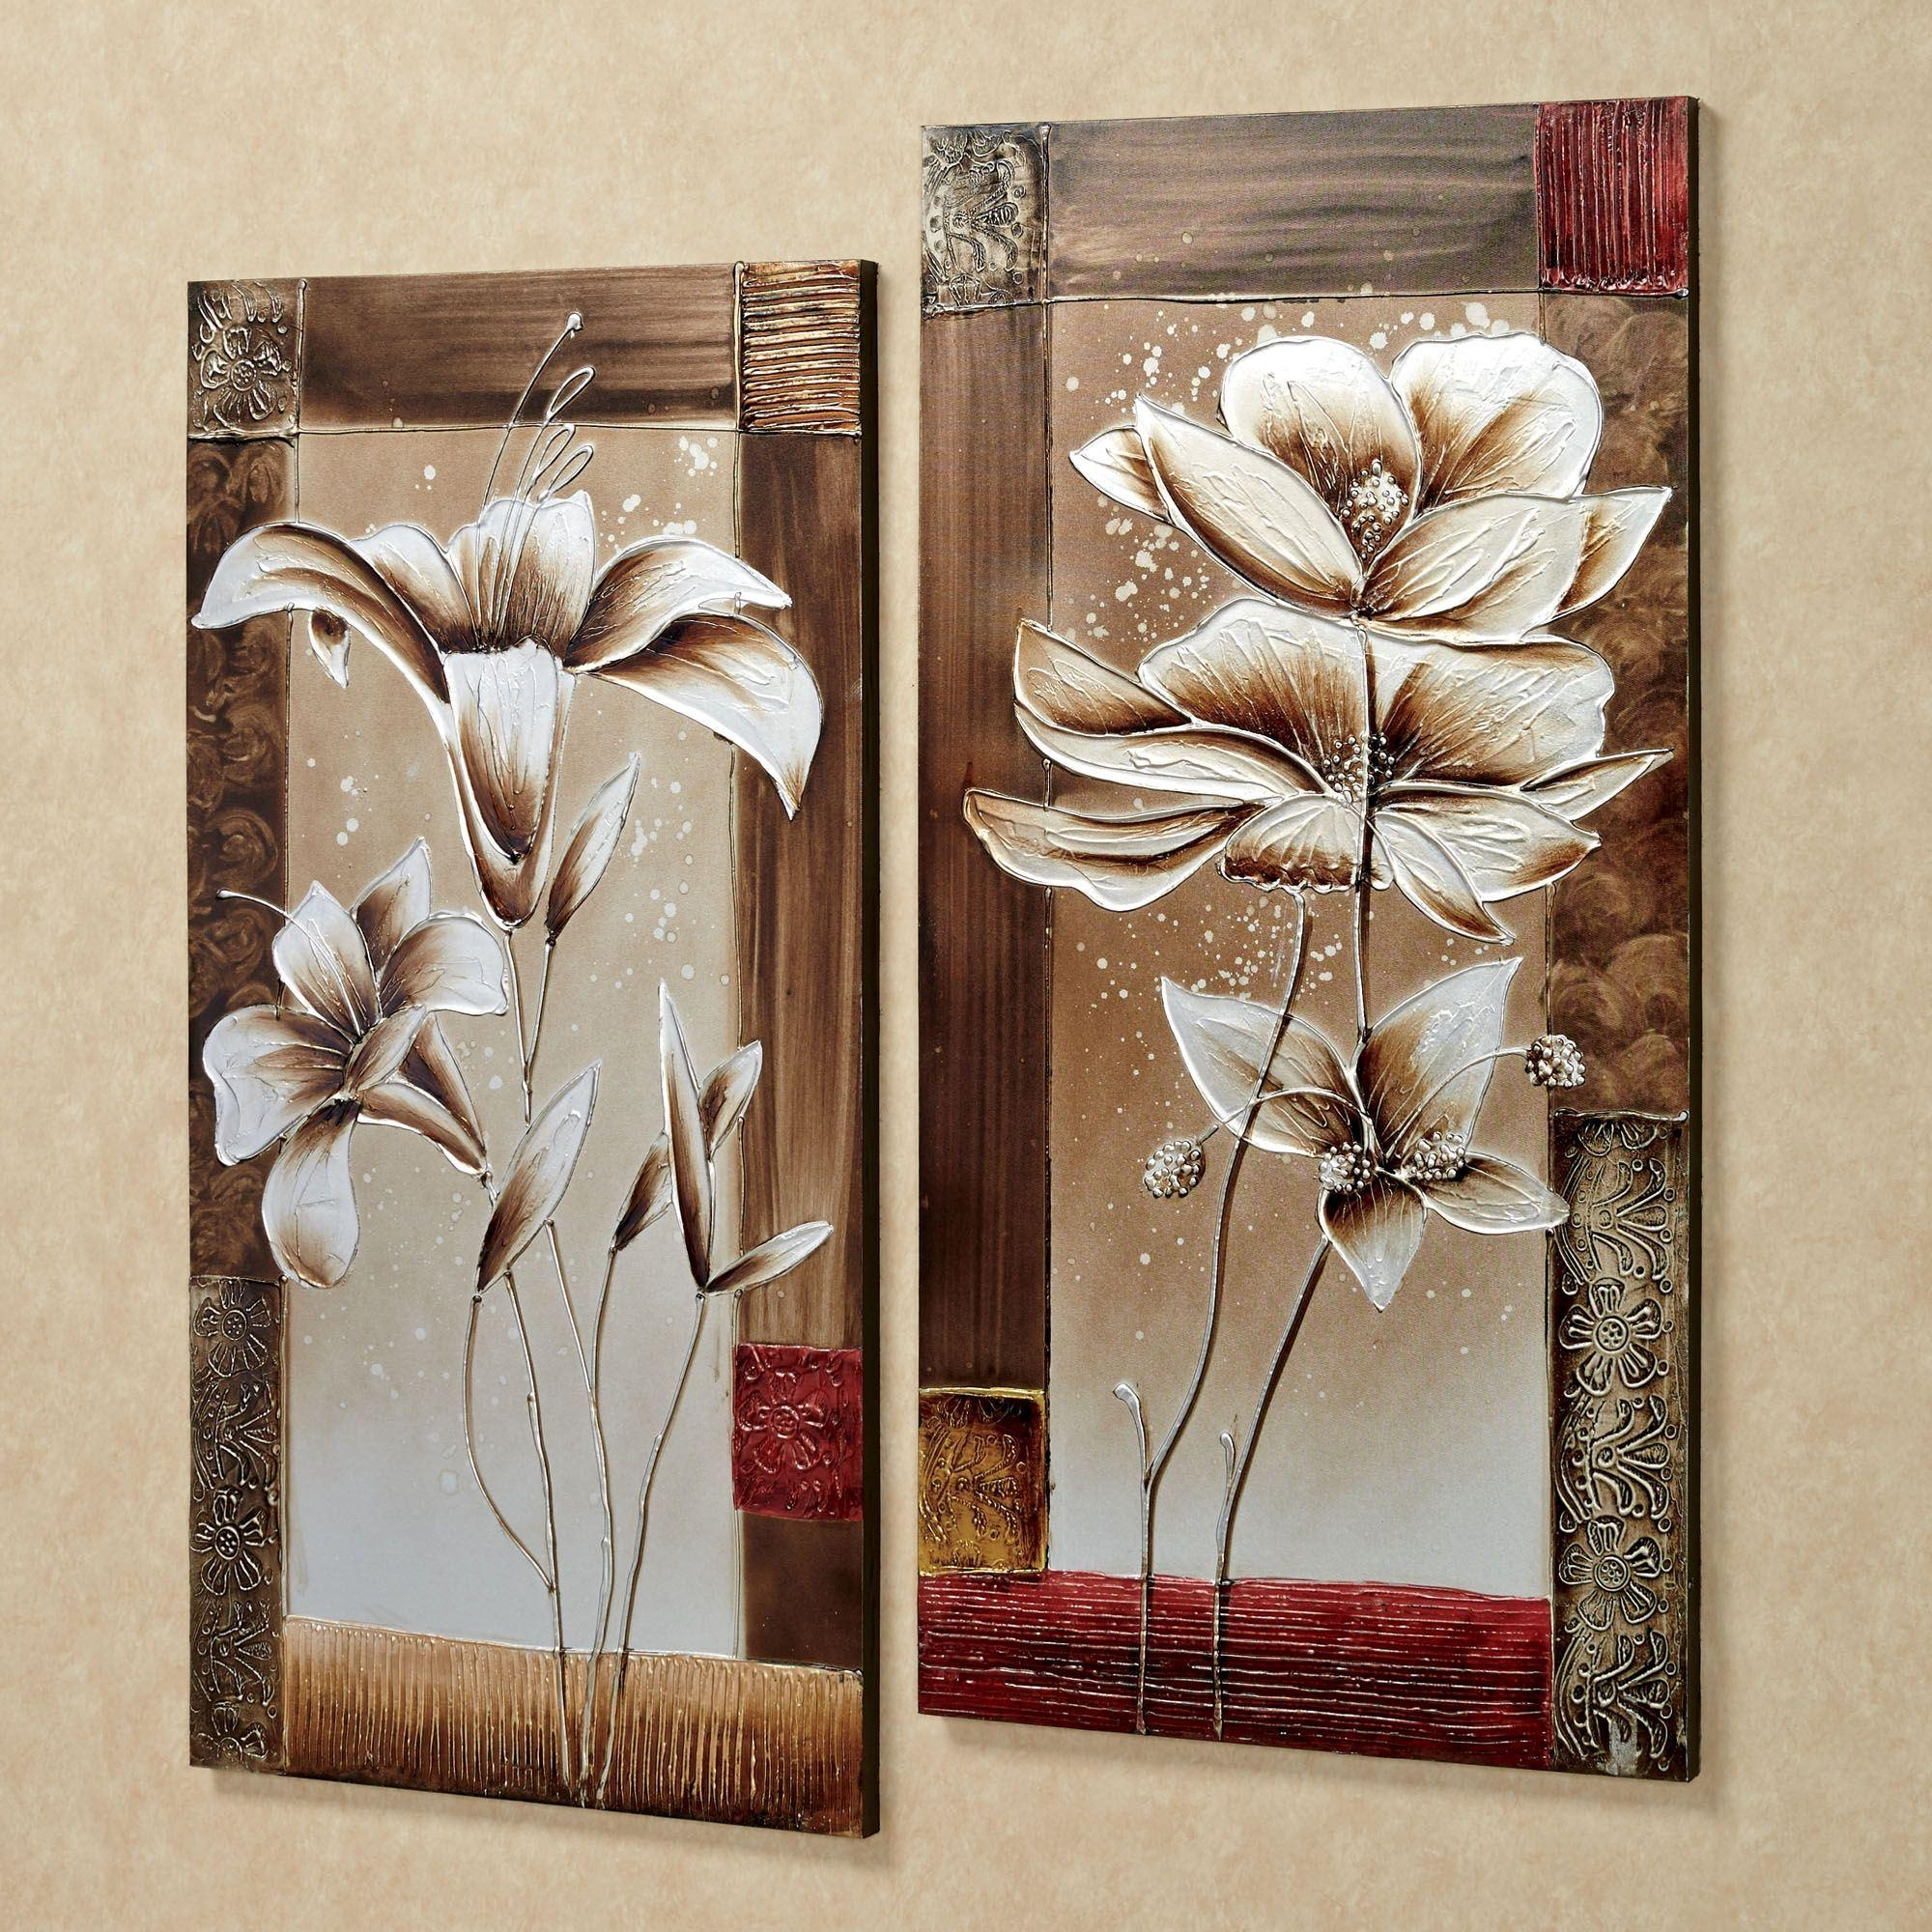 Wall Art: Awesome Floral Canvas Wall Art Wrapped Canvas Floral Intended For Botanical Metal Wall Art (View 15 of 20)